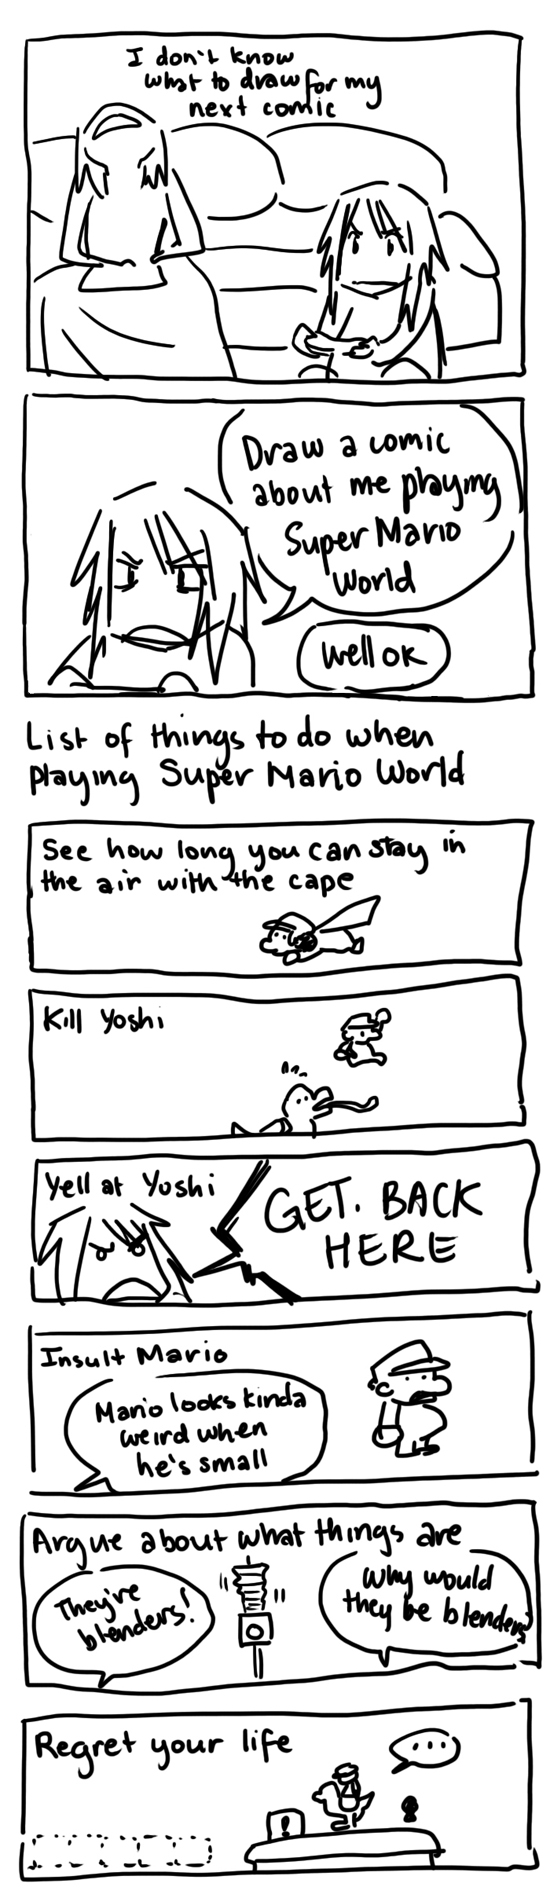 Summer Break Comics: Super Mario World